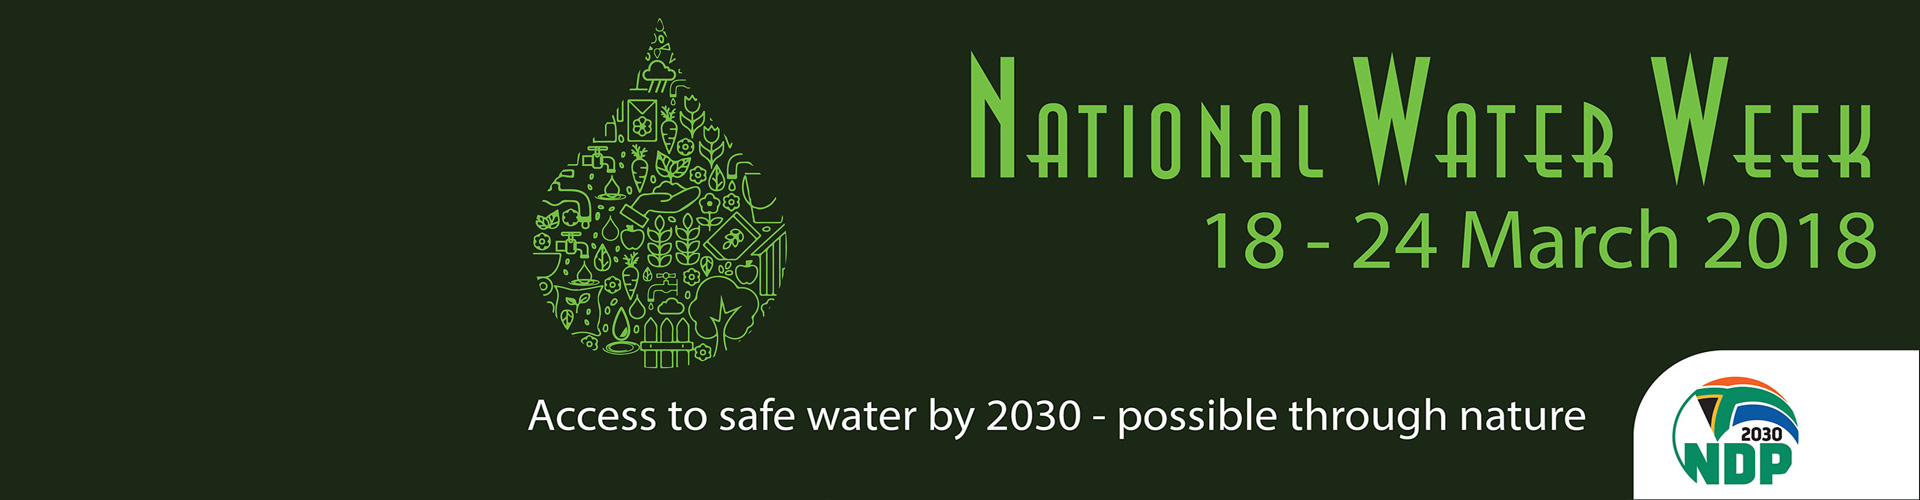 OchriO - Magalies Water - National Water Week 2018 - NDP 2030